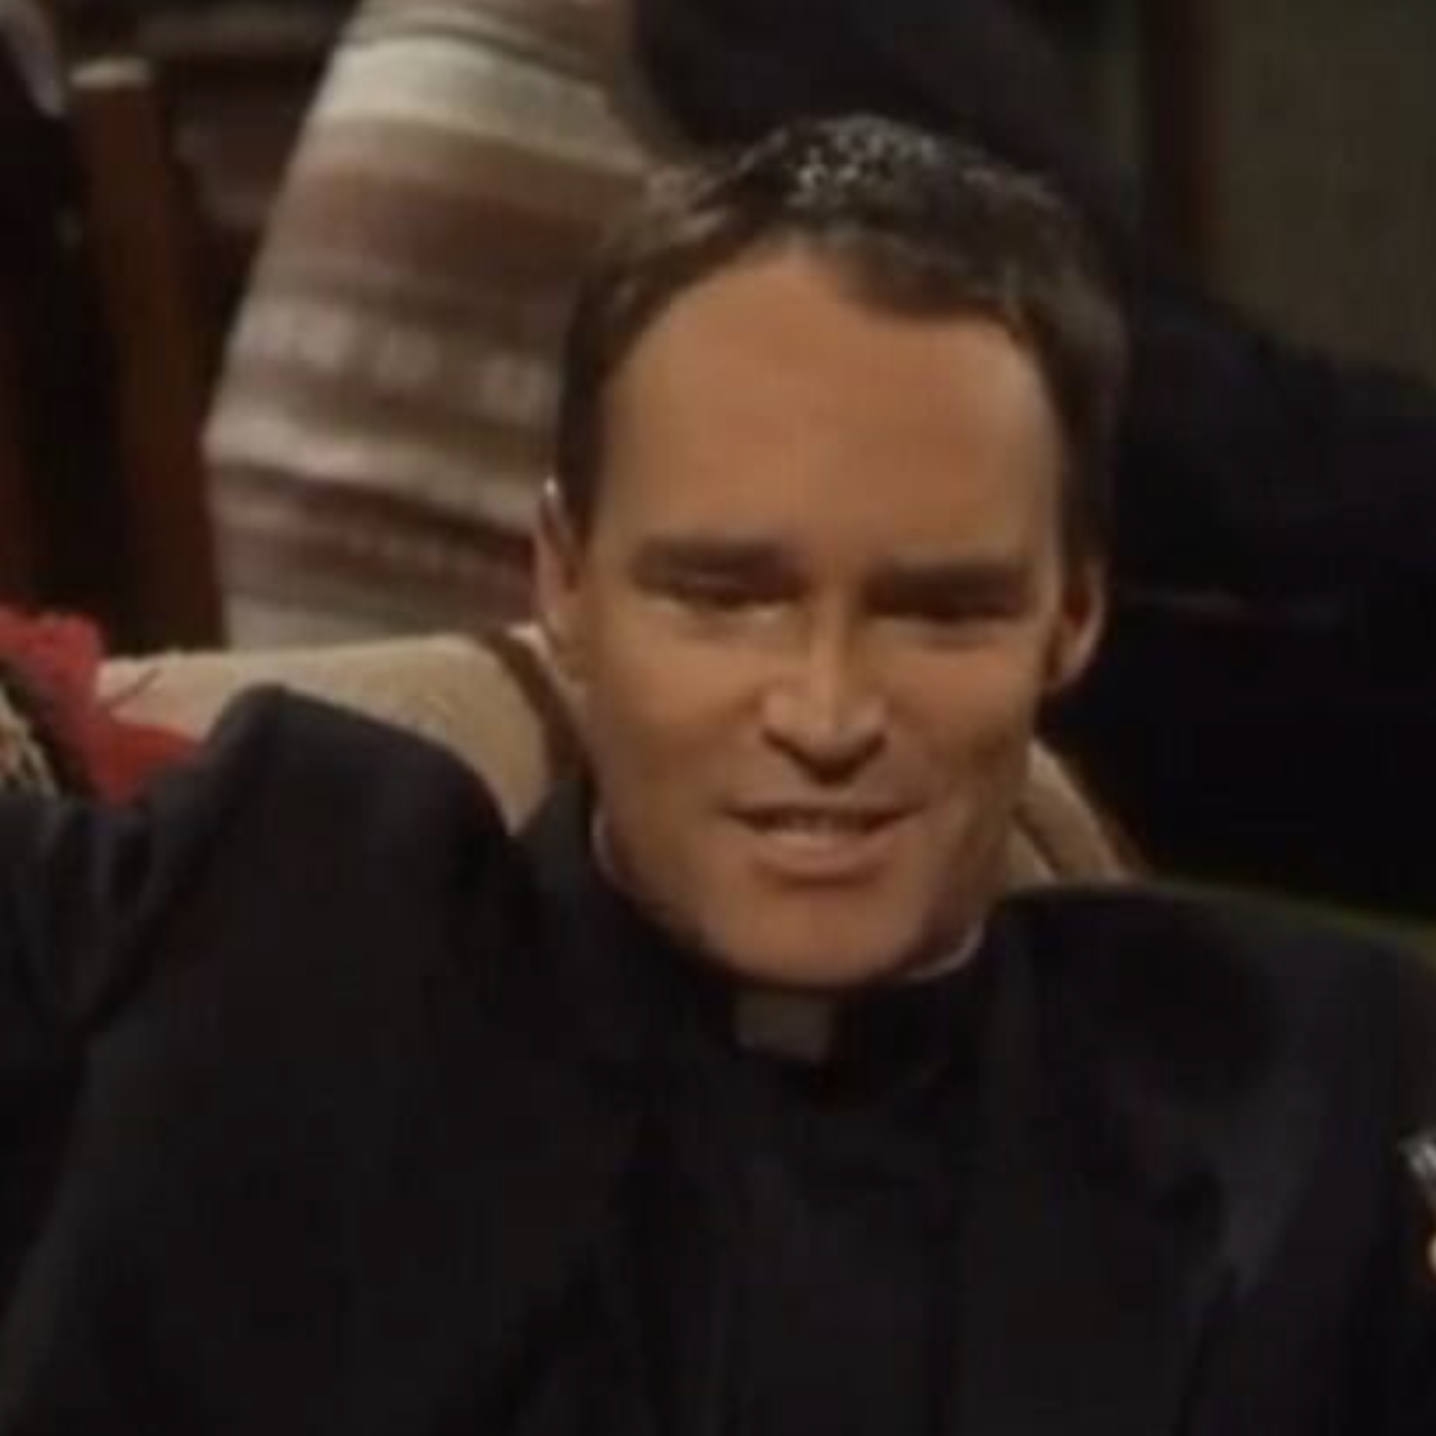 Father Buzz Cagney